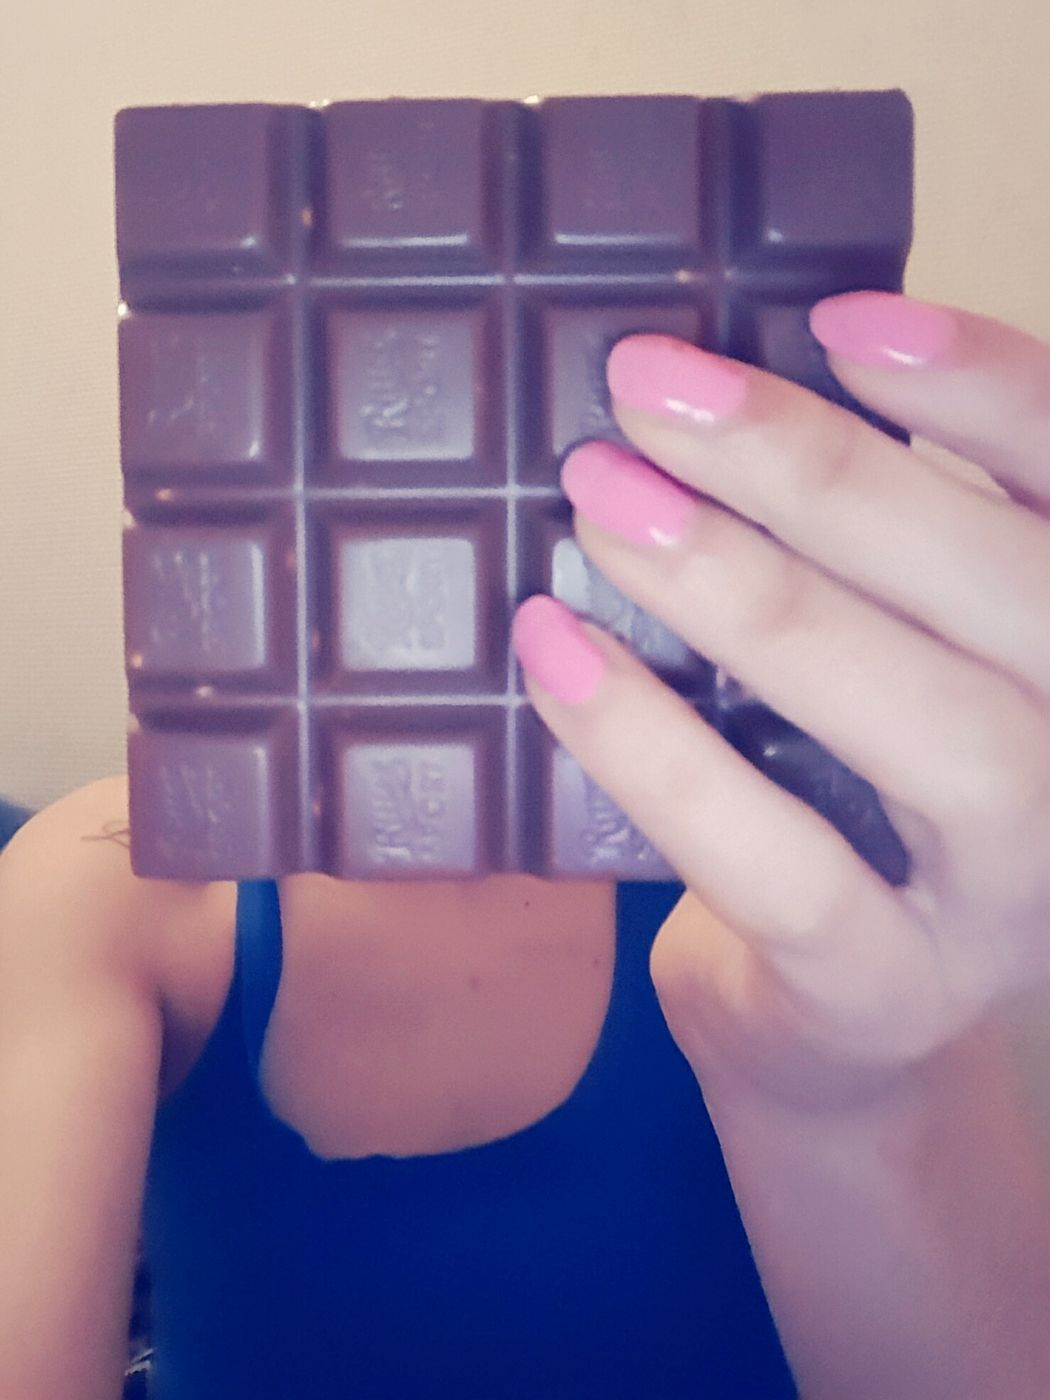 Studying Kind Of Chocolate In My Mouf Beingallhealthyandshit Selfieoftheday It's Time For Someone To Do Something Pink Nails Anonymous Lieblingsteil